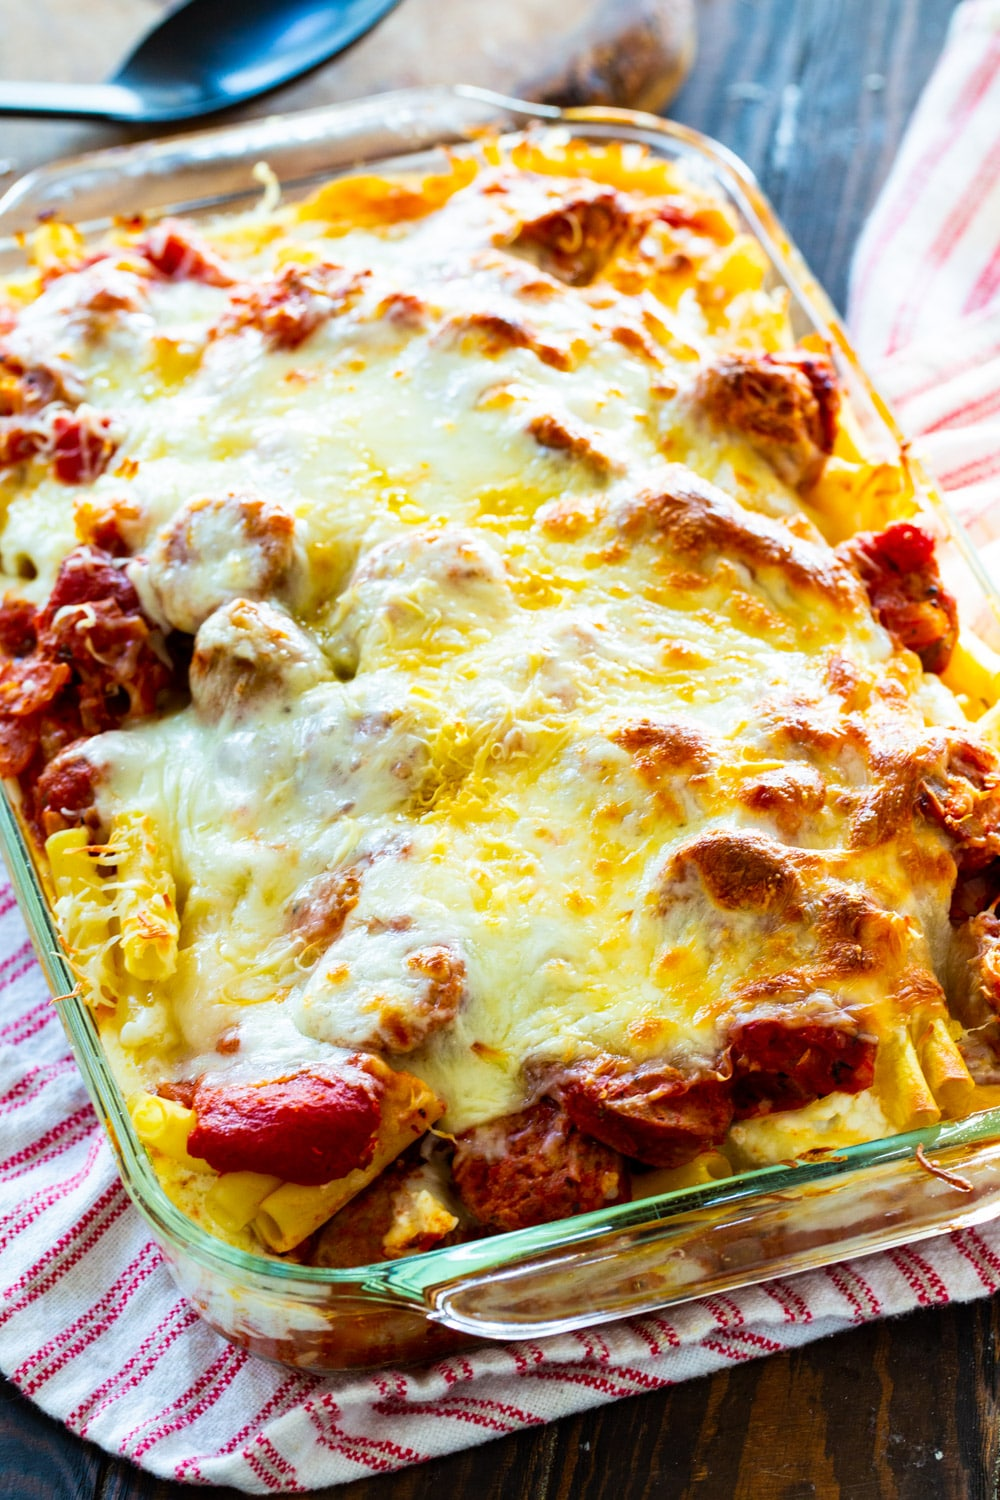 Baked ziti covered with melted cheese in baking dish.